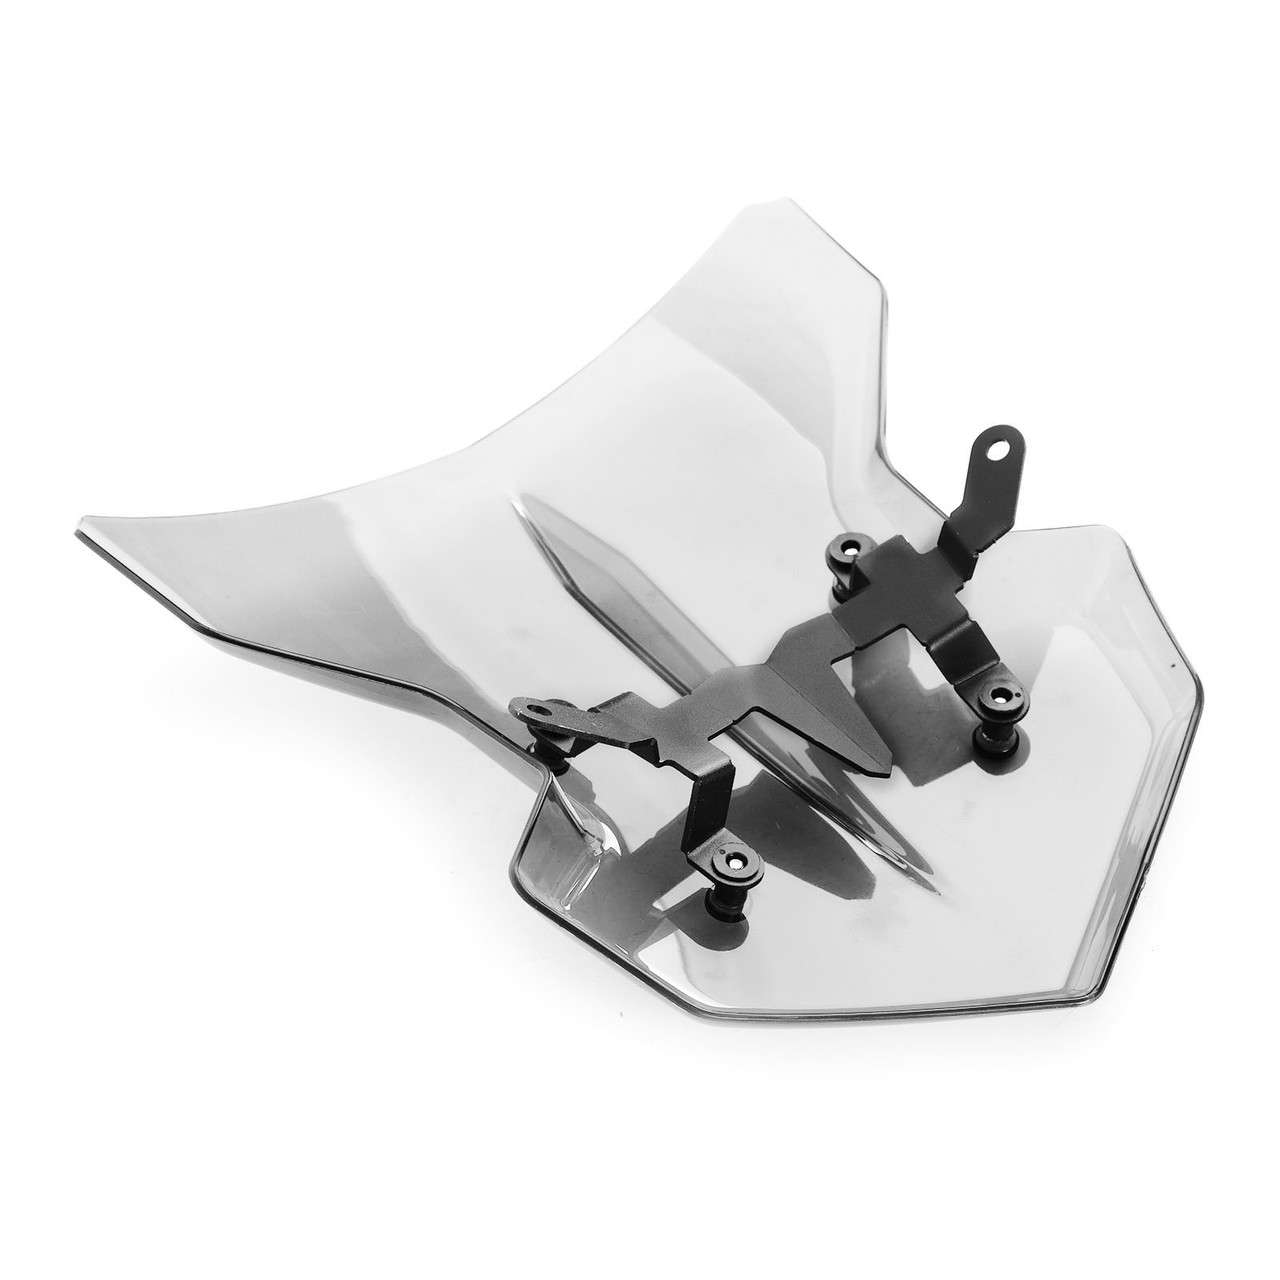 Windshield Fits For Yamaha MT-03 2020 Gray